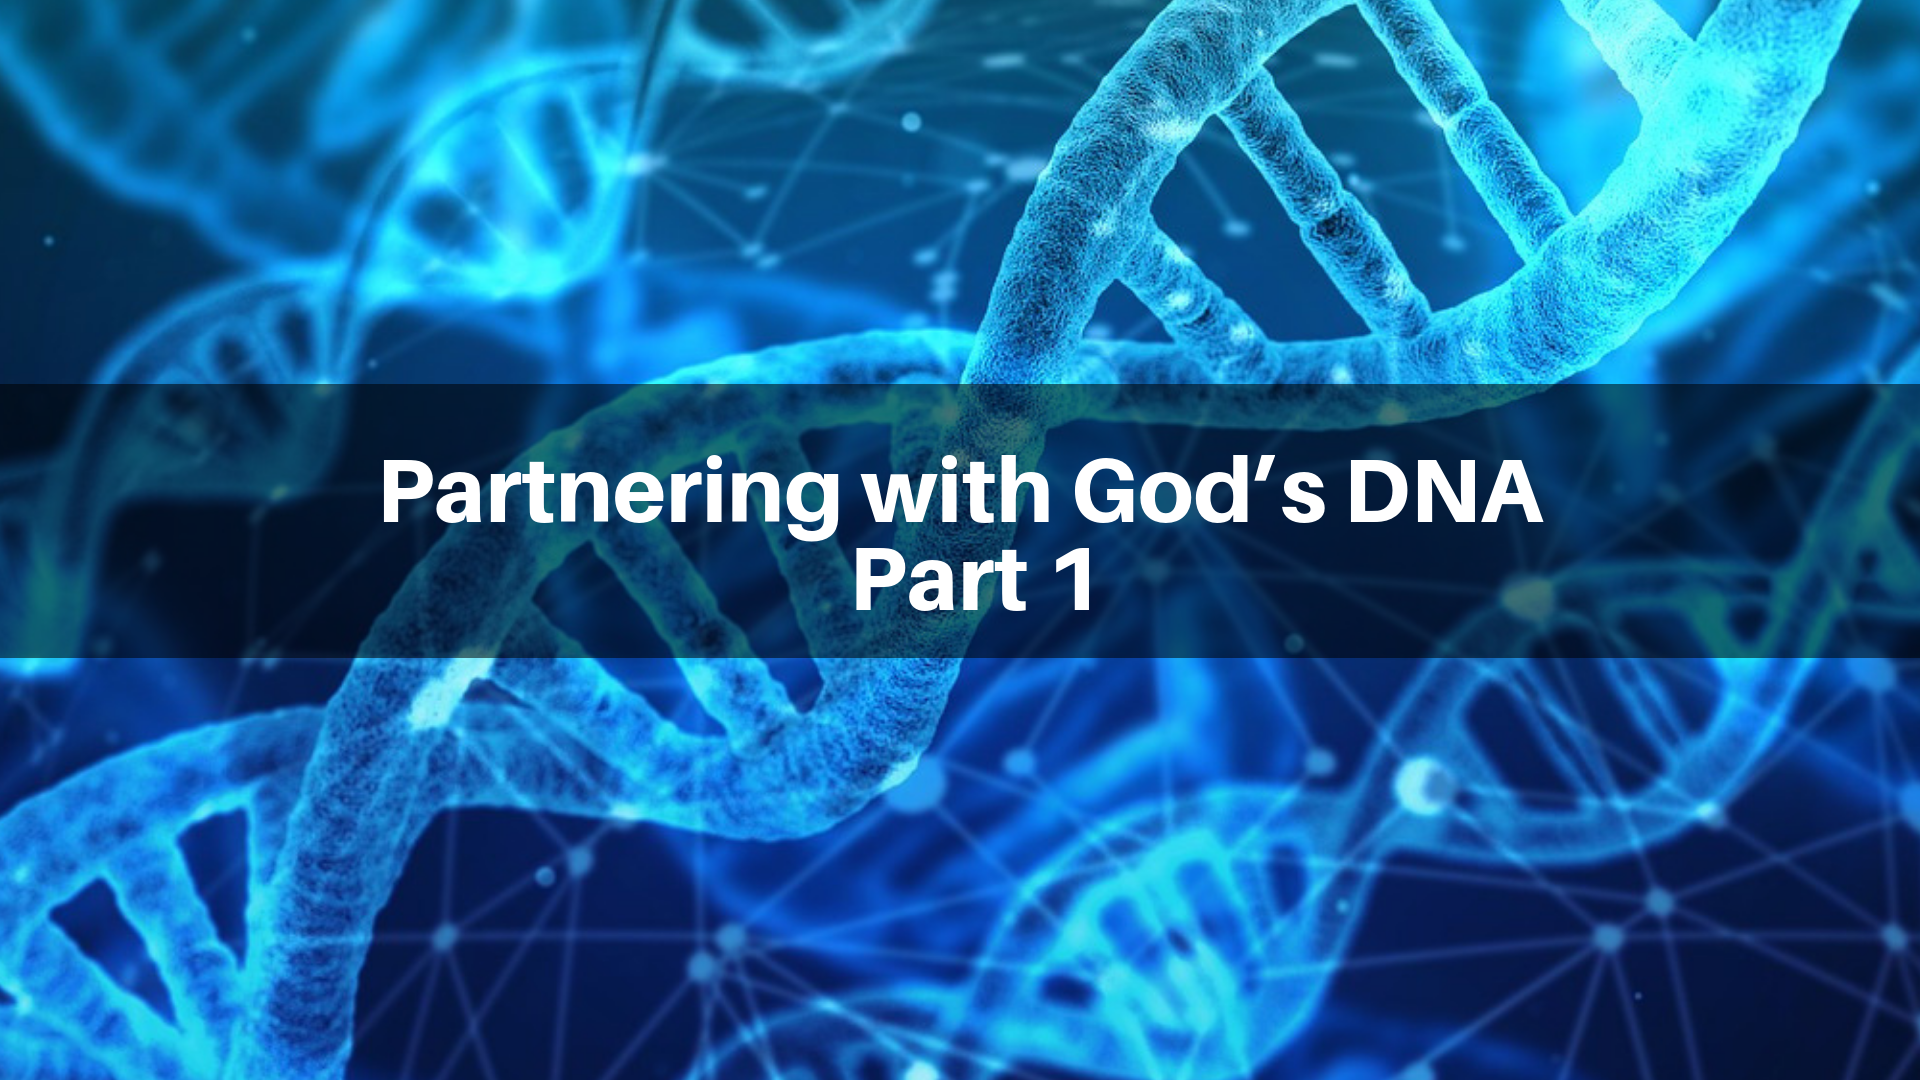 Partnering with God's DNA, Part 1 - 11/25/2018